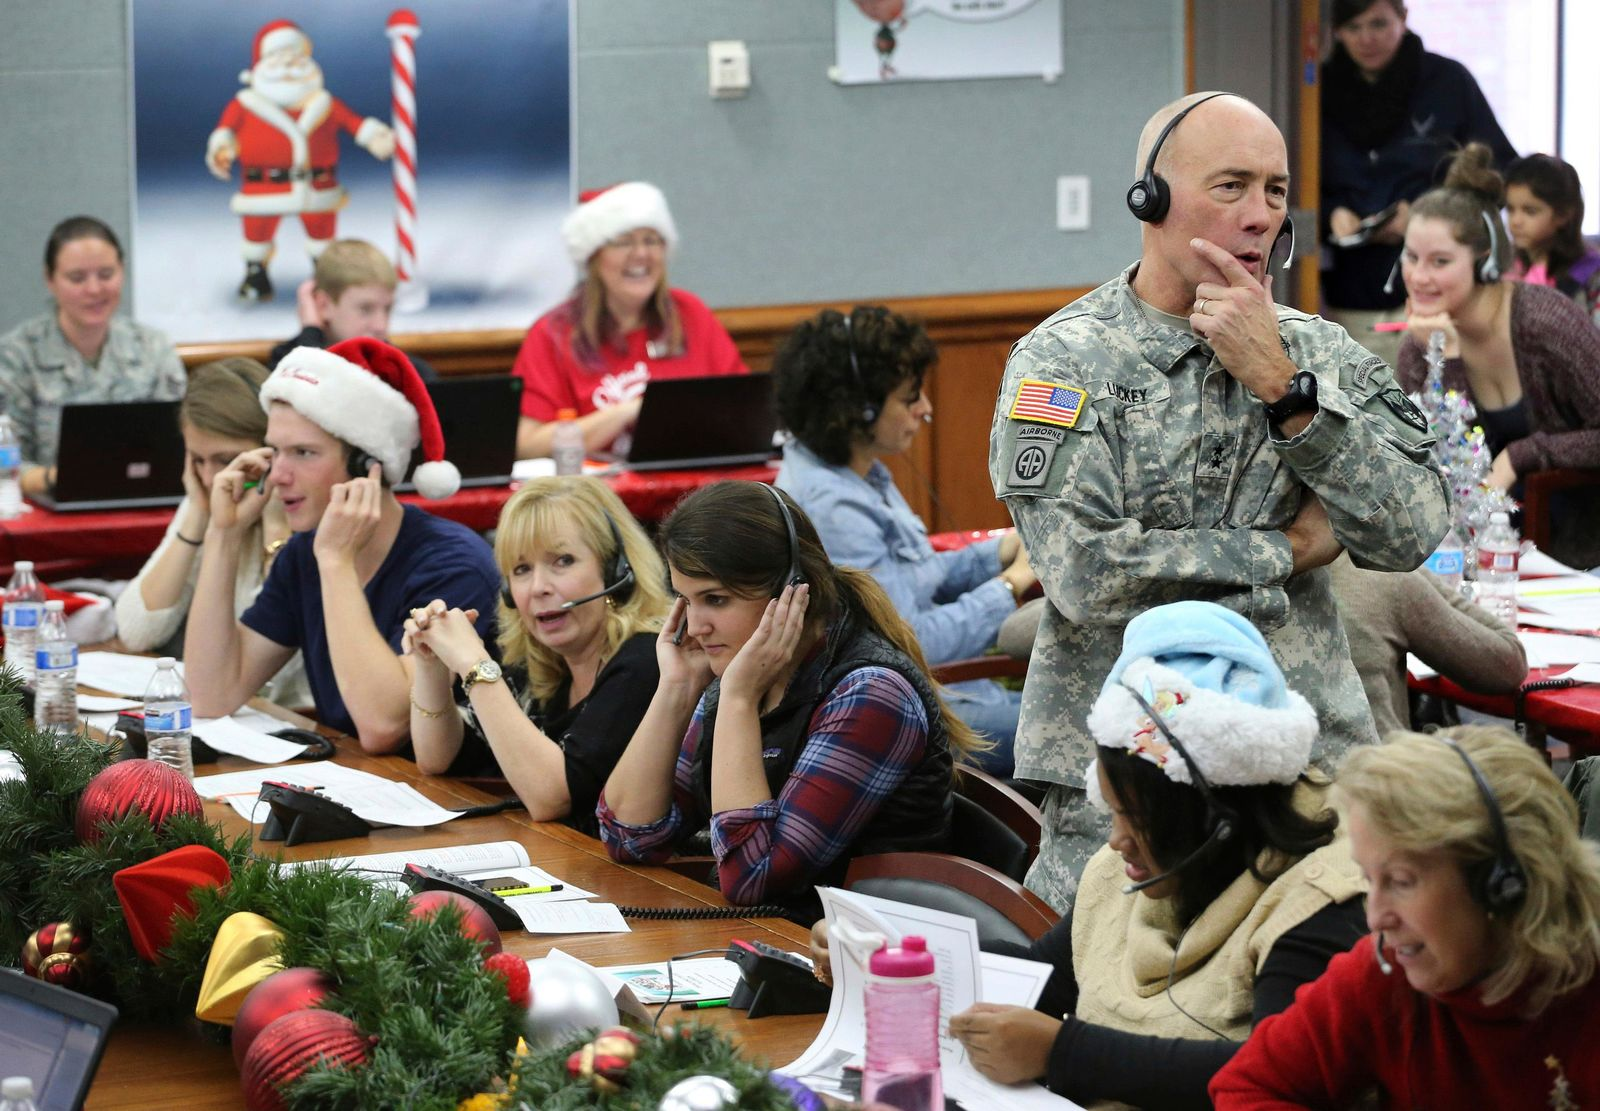 FILE - In this Dec. 24, 2014, file photo, NORAD Chief of Staff Maj. Gen. Charles D. Luckey takes a call while volunteering at the NORAD Tracks Santa center at Peterson Air Force Base in Colorado Springs, Colo. Hundreds of volunteers will help answer the phones from children around the world calling for Santa when the program resumes on Monday, Dec. 24, 2018, for the 63rd year. (AP Photo/Brennan Linsley, File)